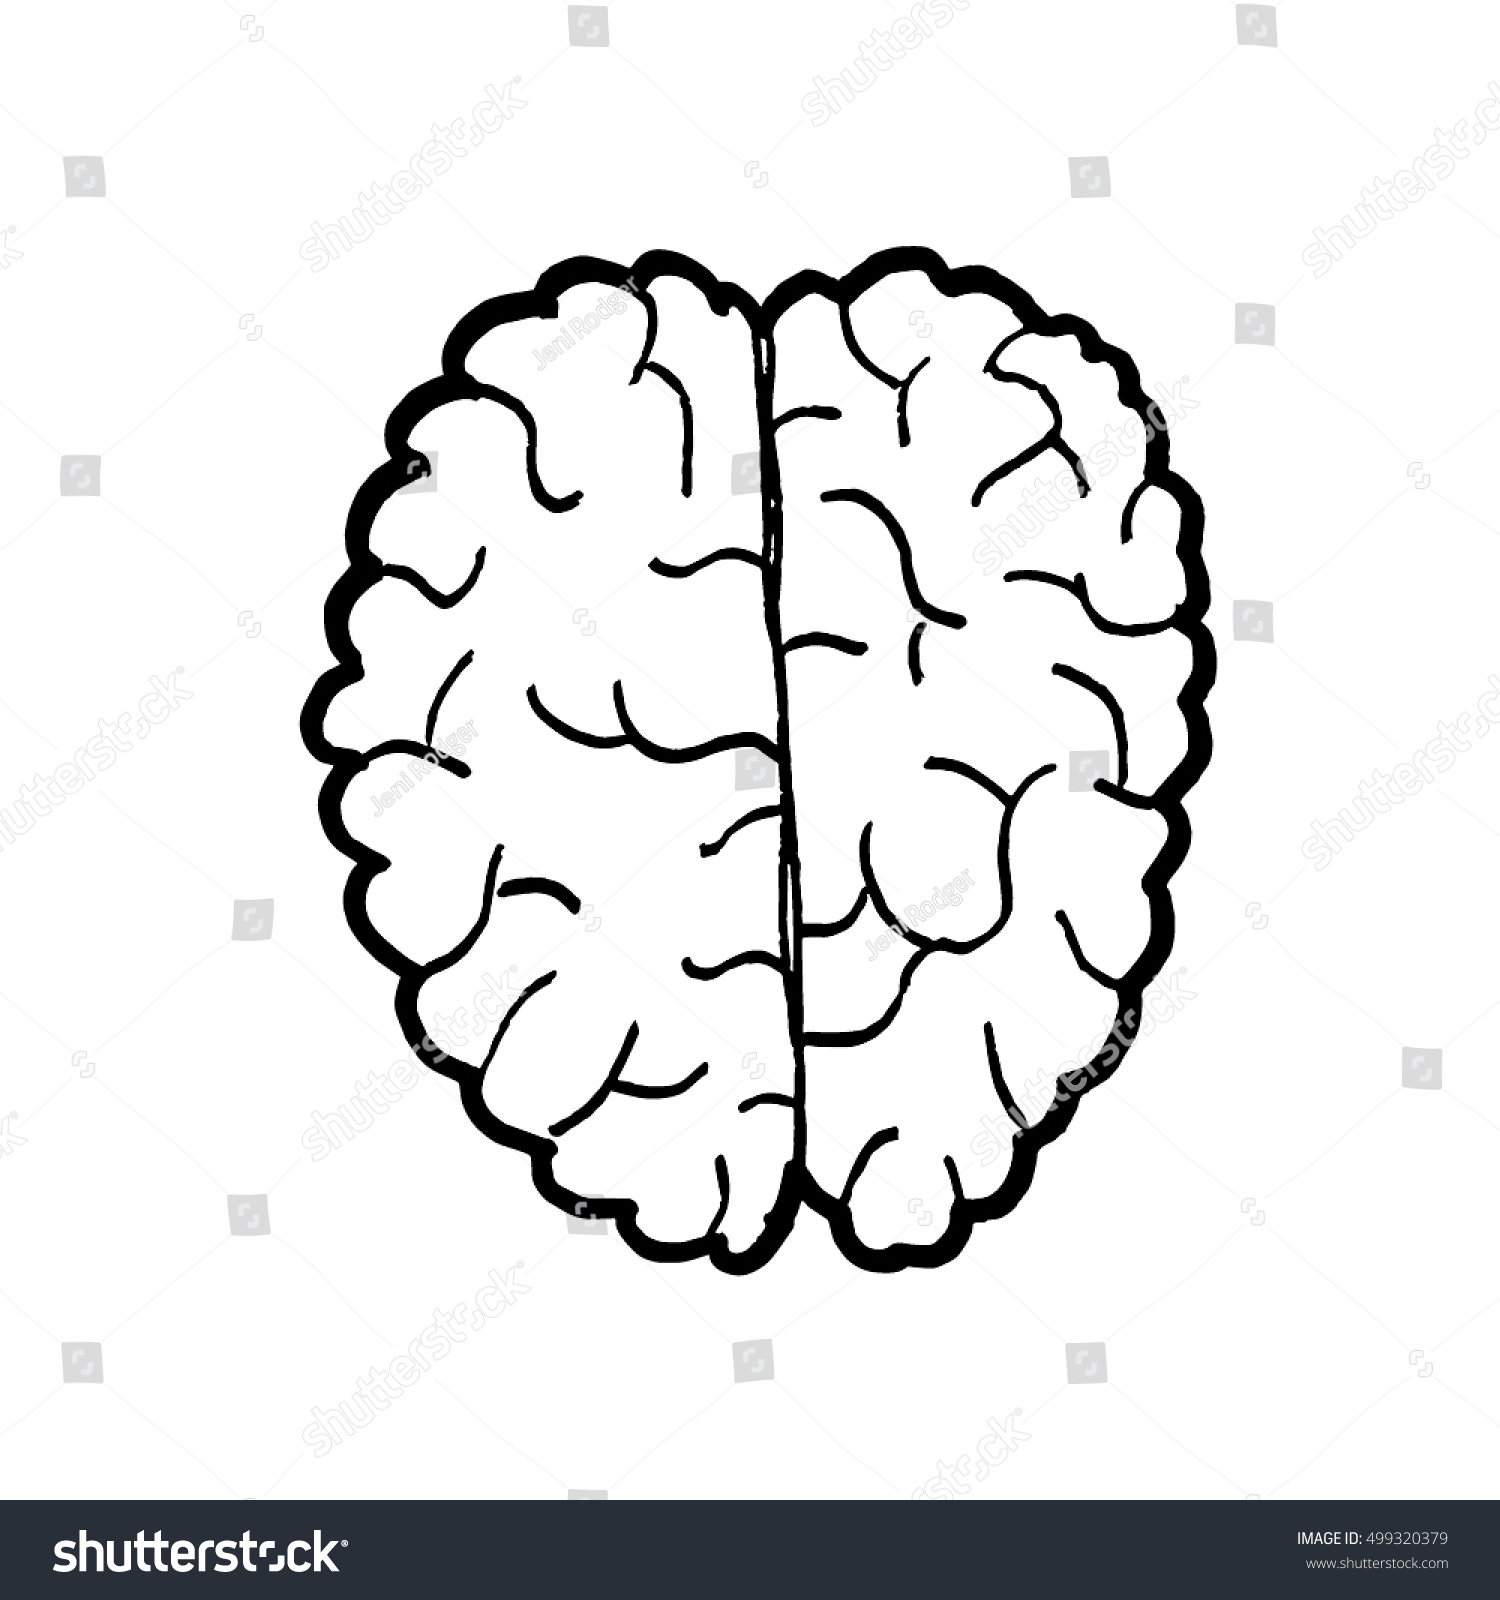 Brain Drawing Images | Free download best Brain Drawing